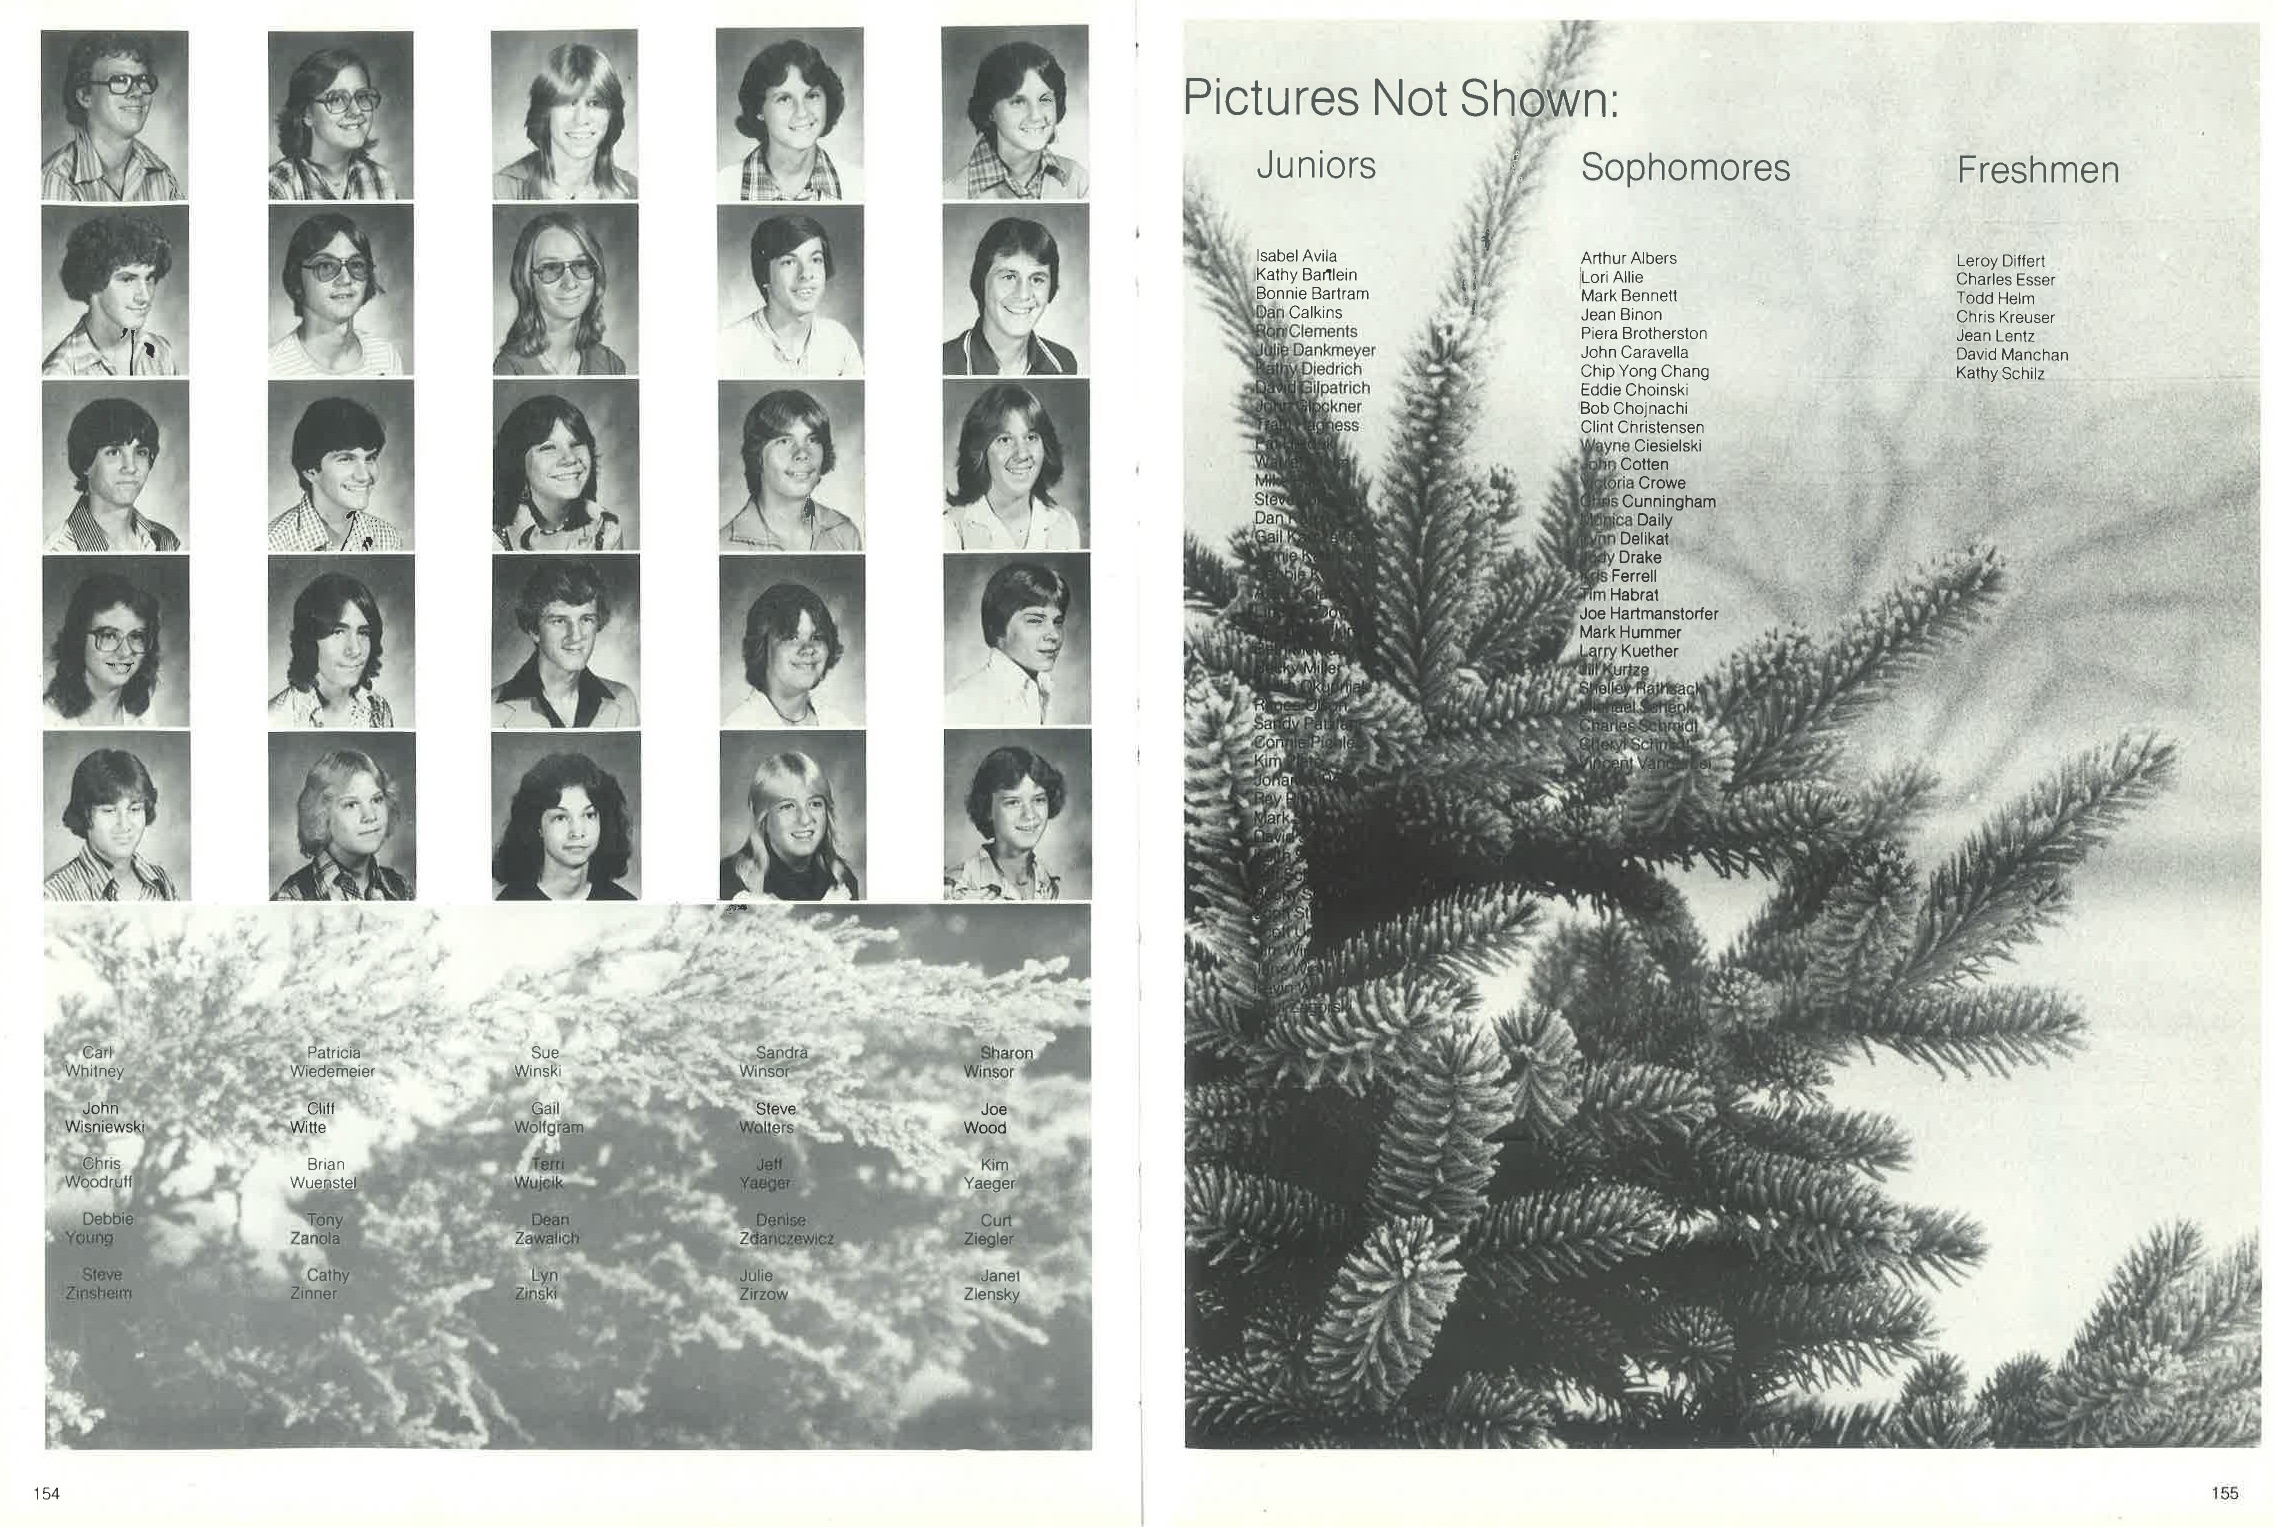 1979_Yearbook_146.jpg